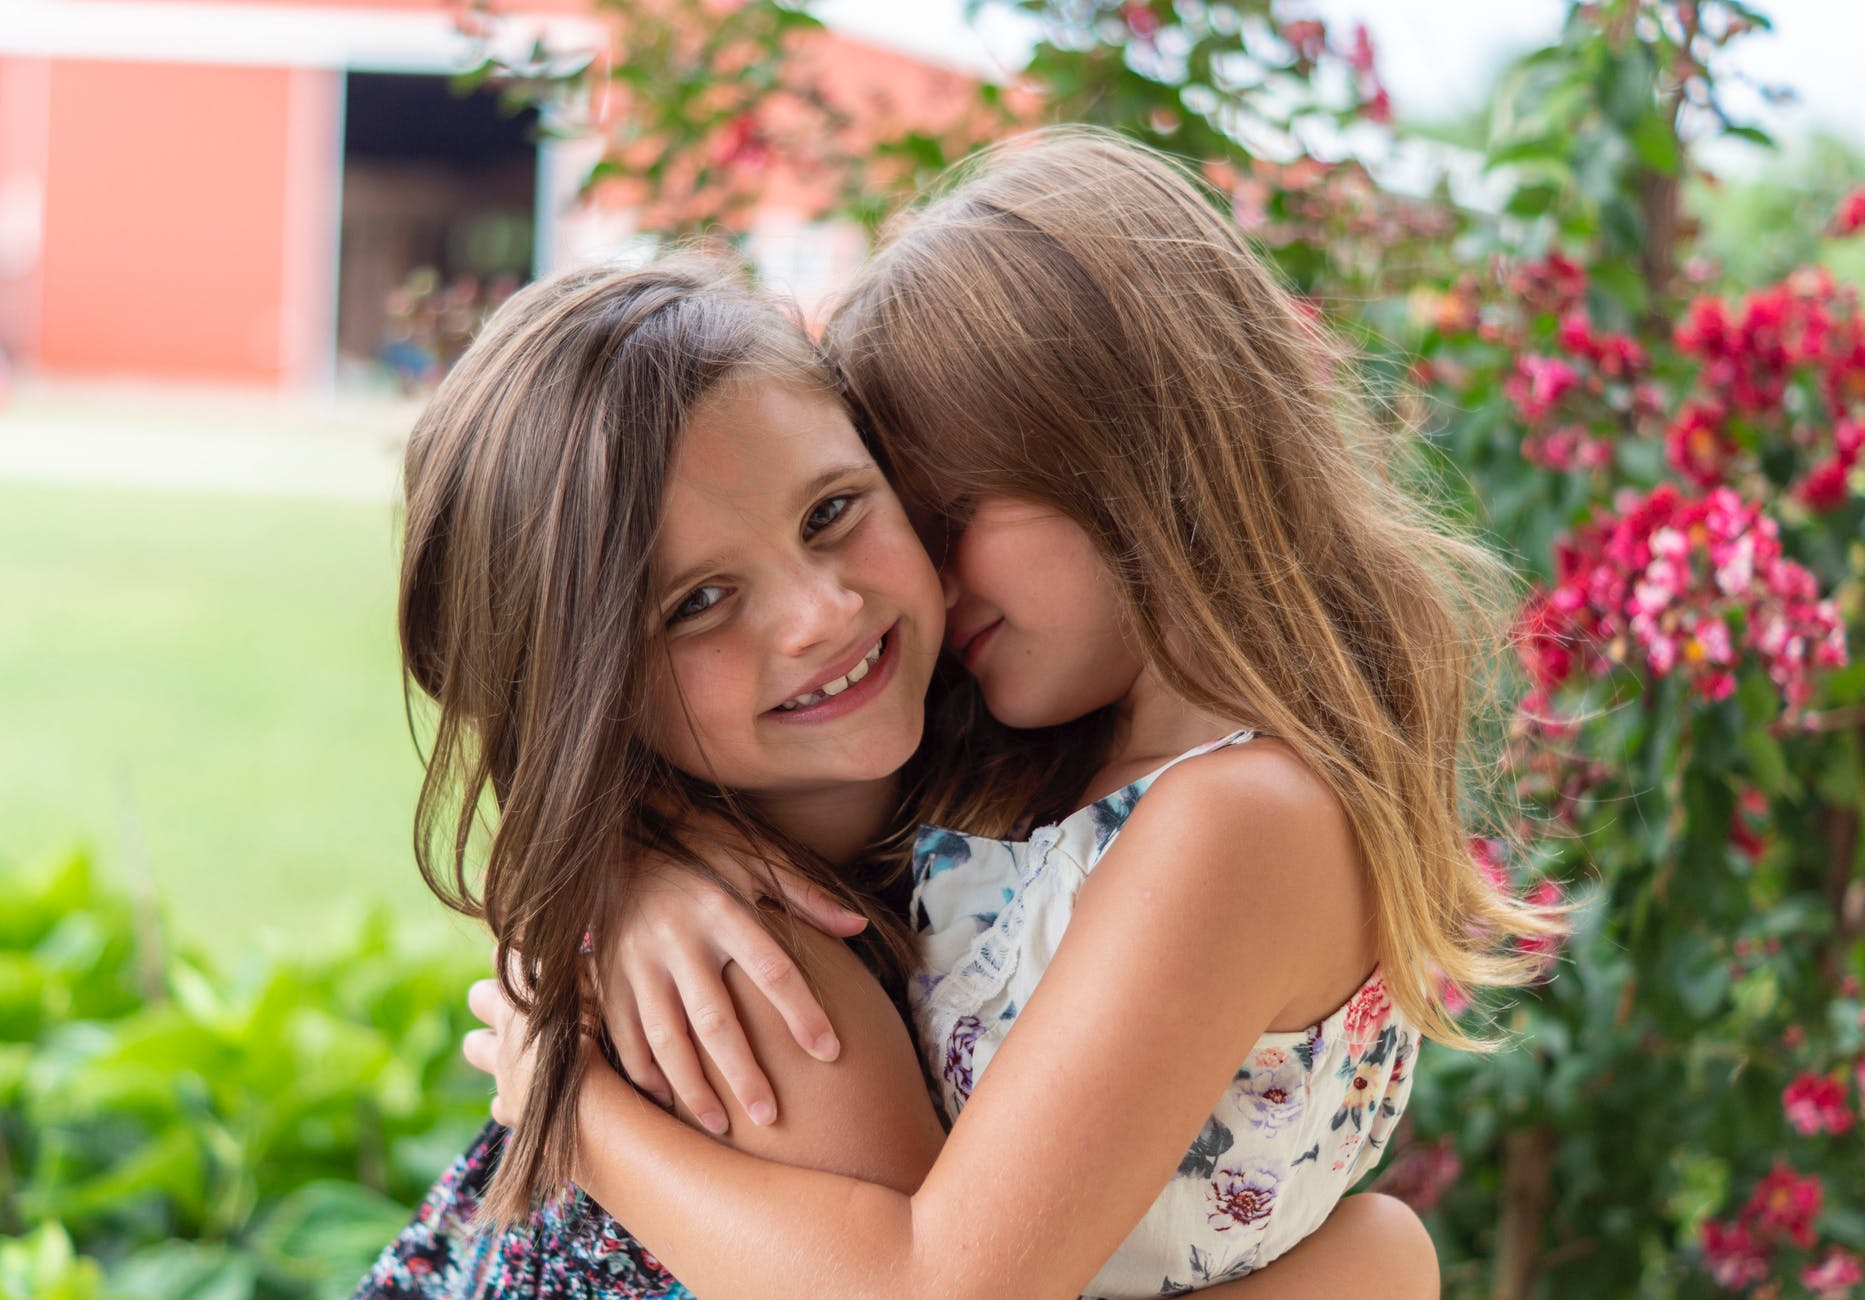 close up photo of two little girls hugging each other